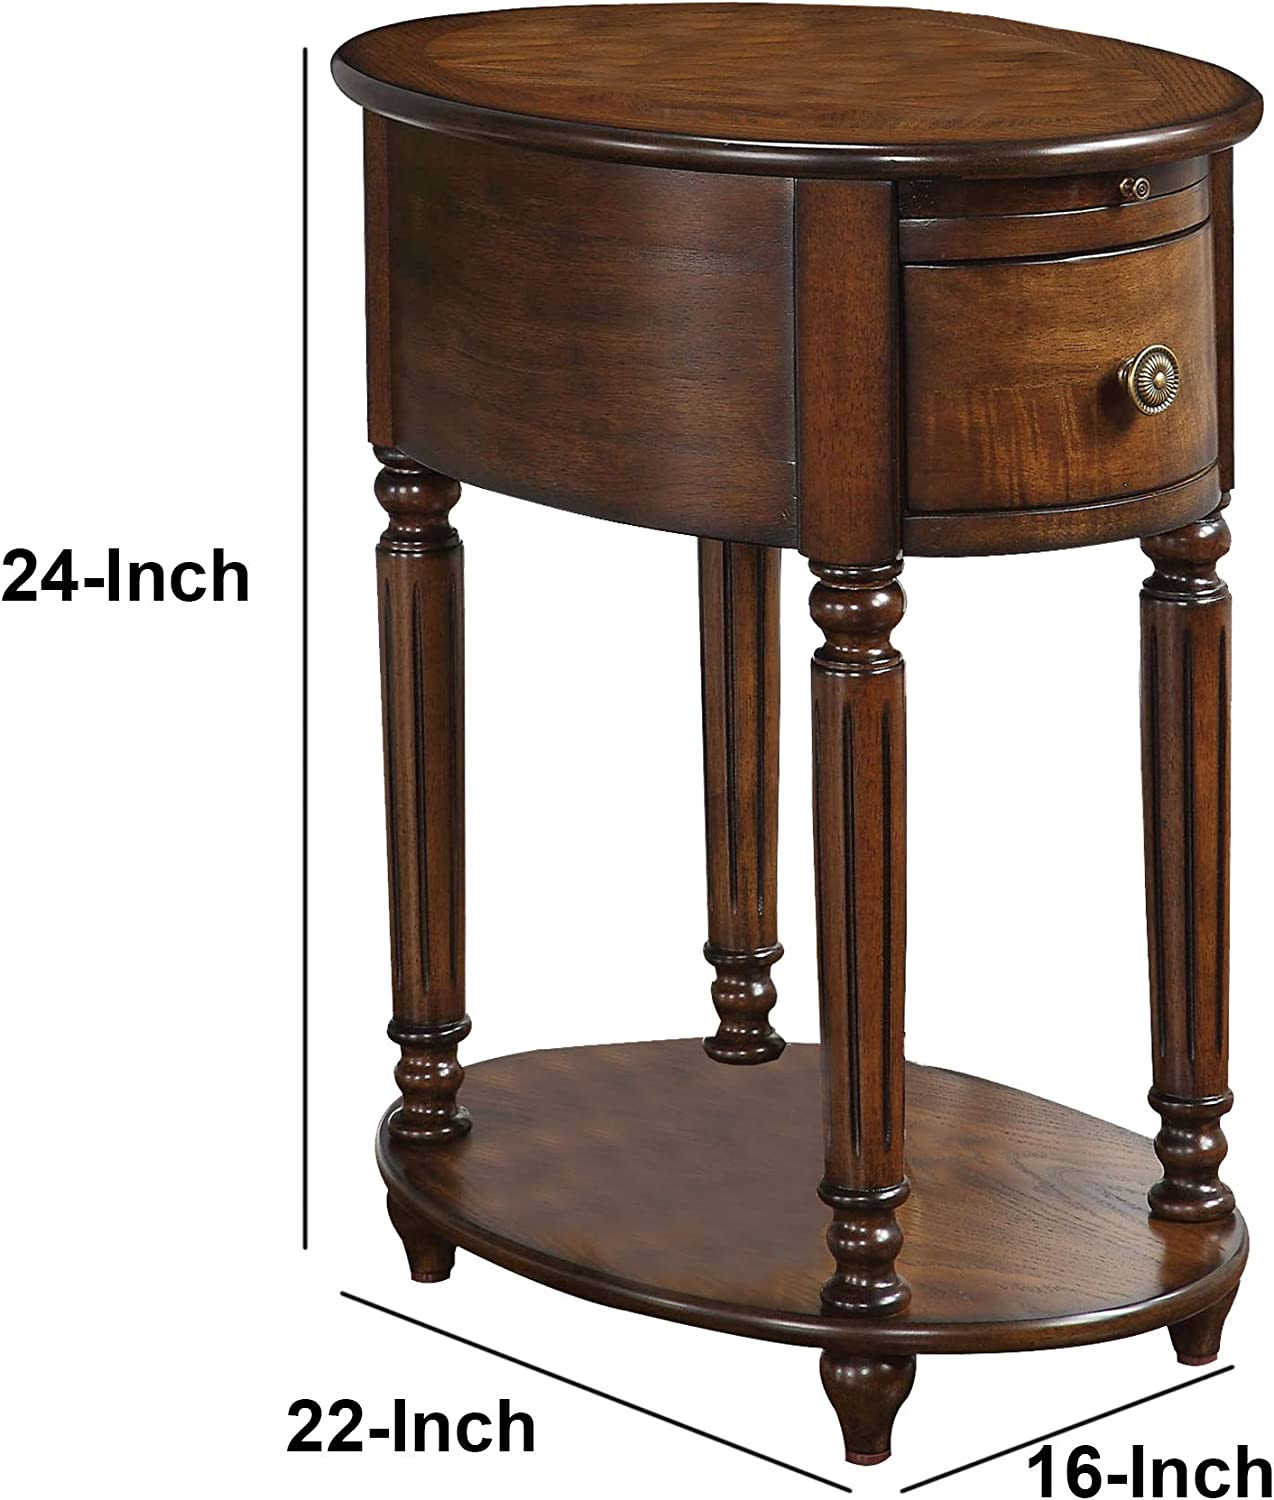 Benzara Alluring Side Table Brown Wood Amazon Co Uk Kitchen Home